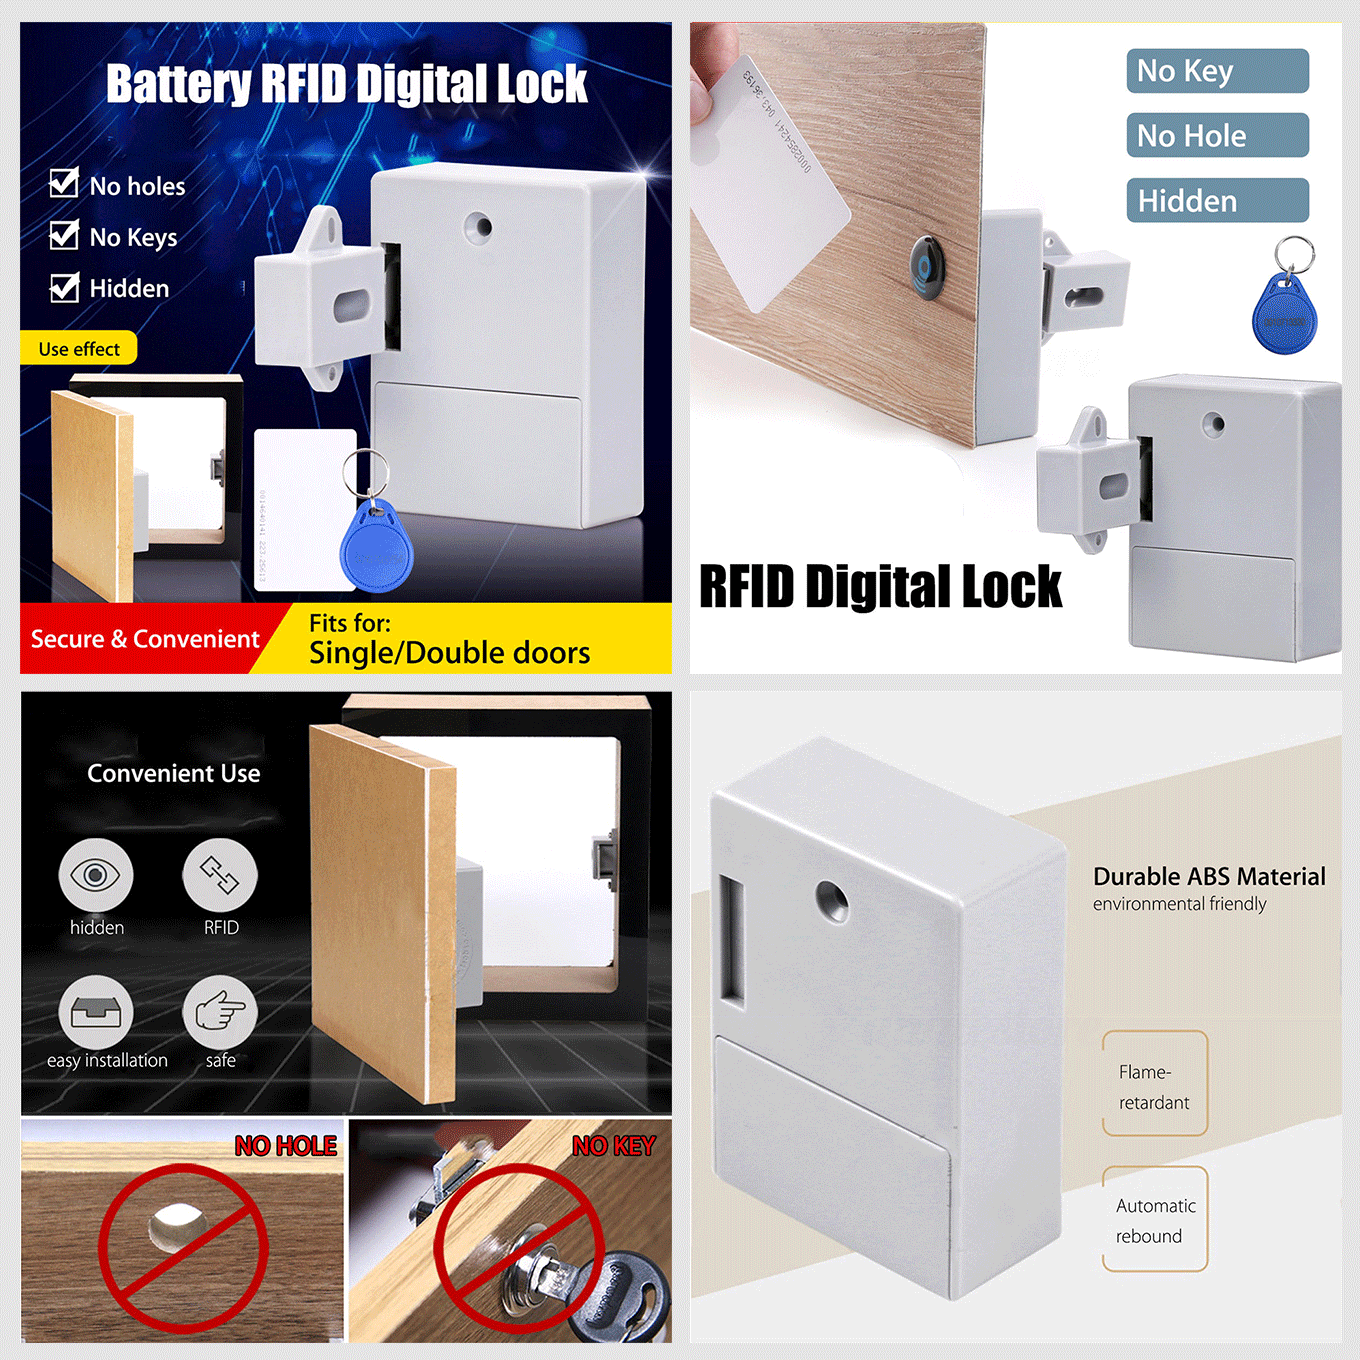 Cabinet Drawer Hidden Rfid Digital Battery Lock Without